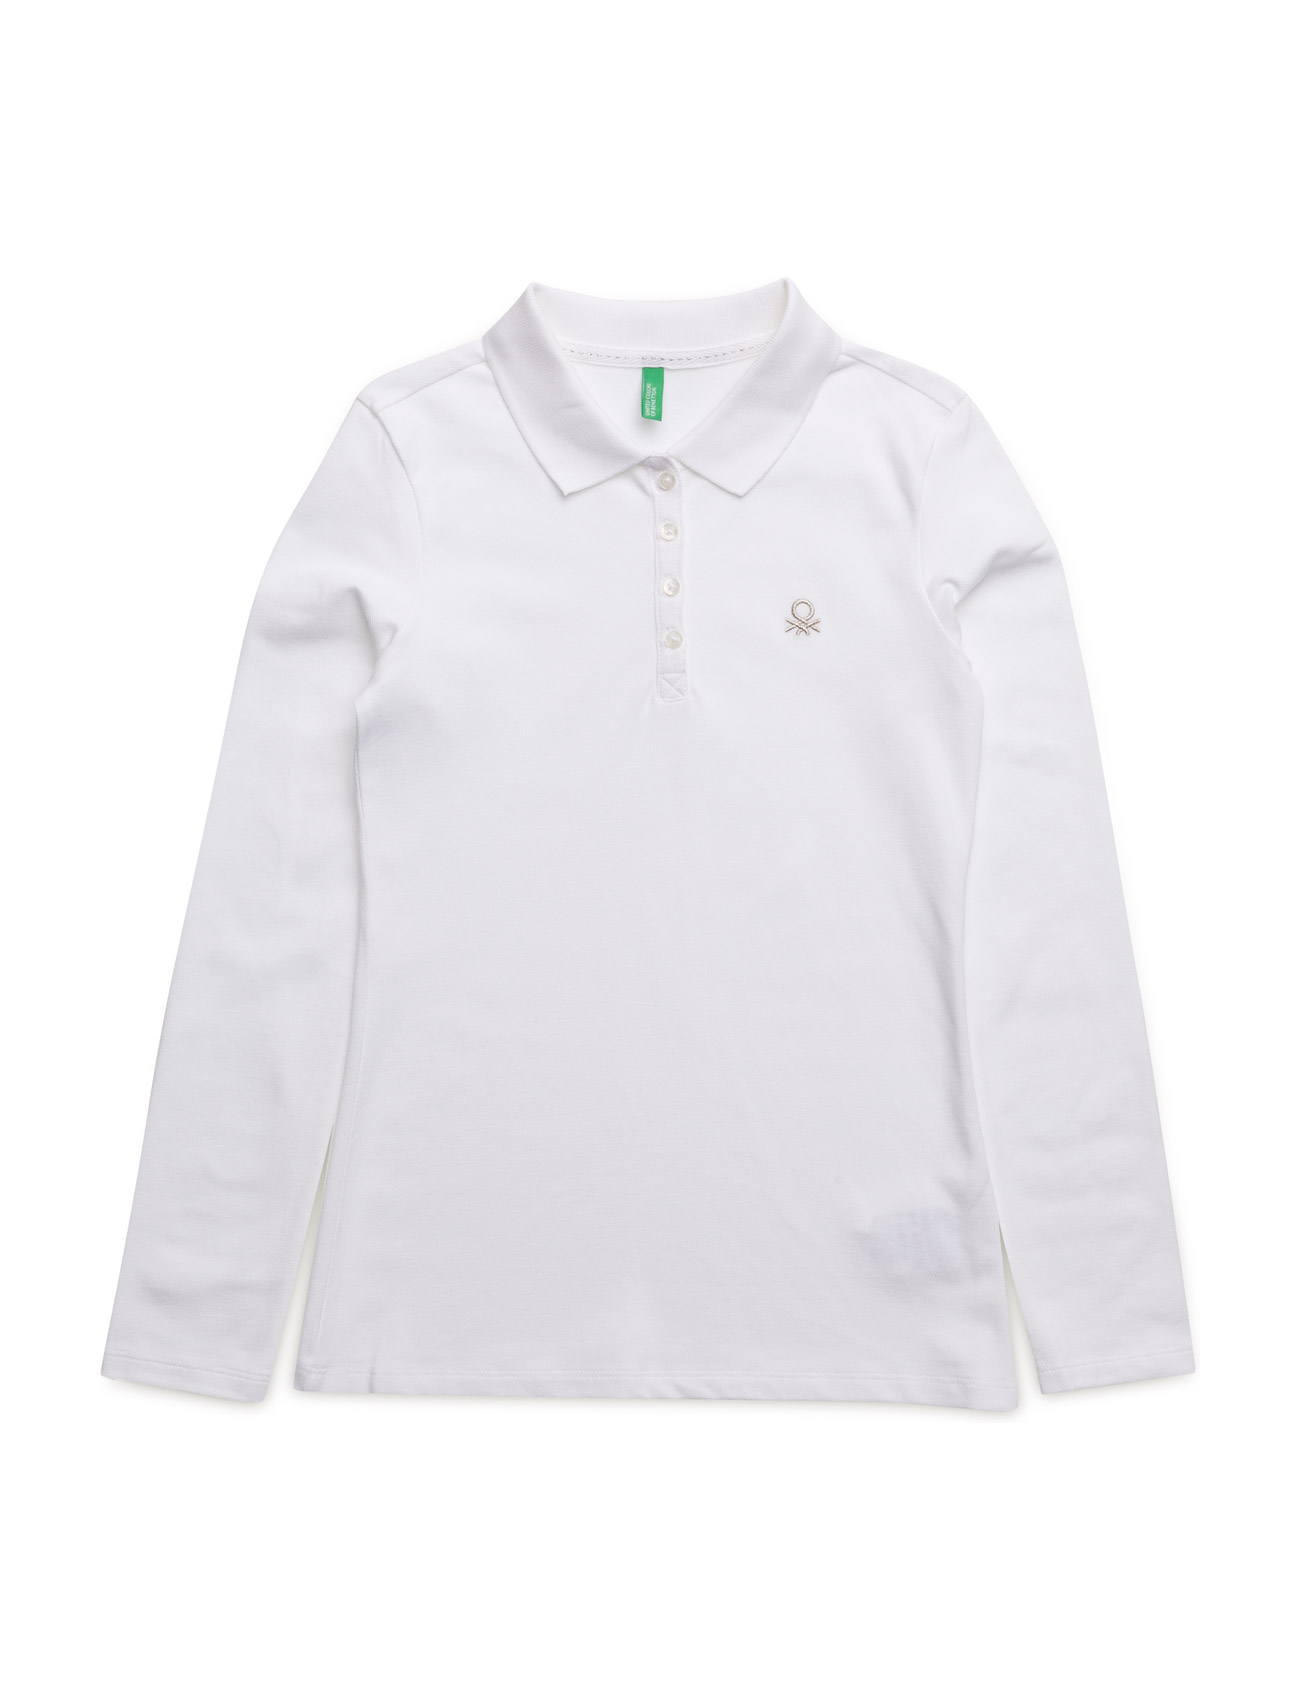 united colors of benetton – L/s polo shirt på boozt.com dk